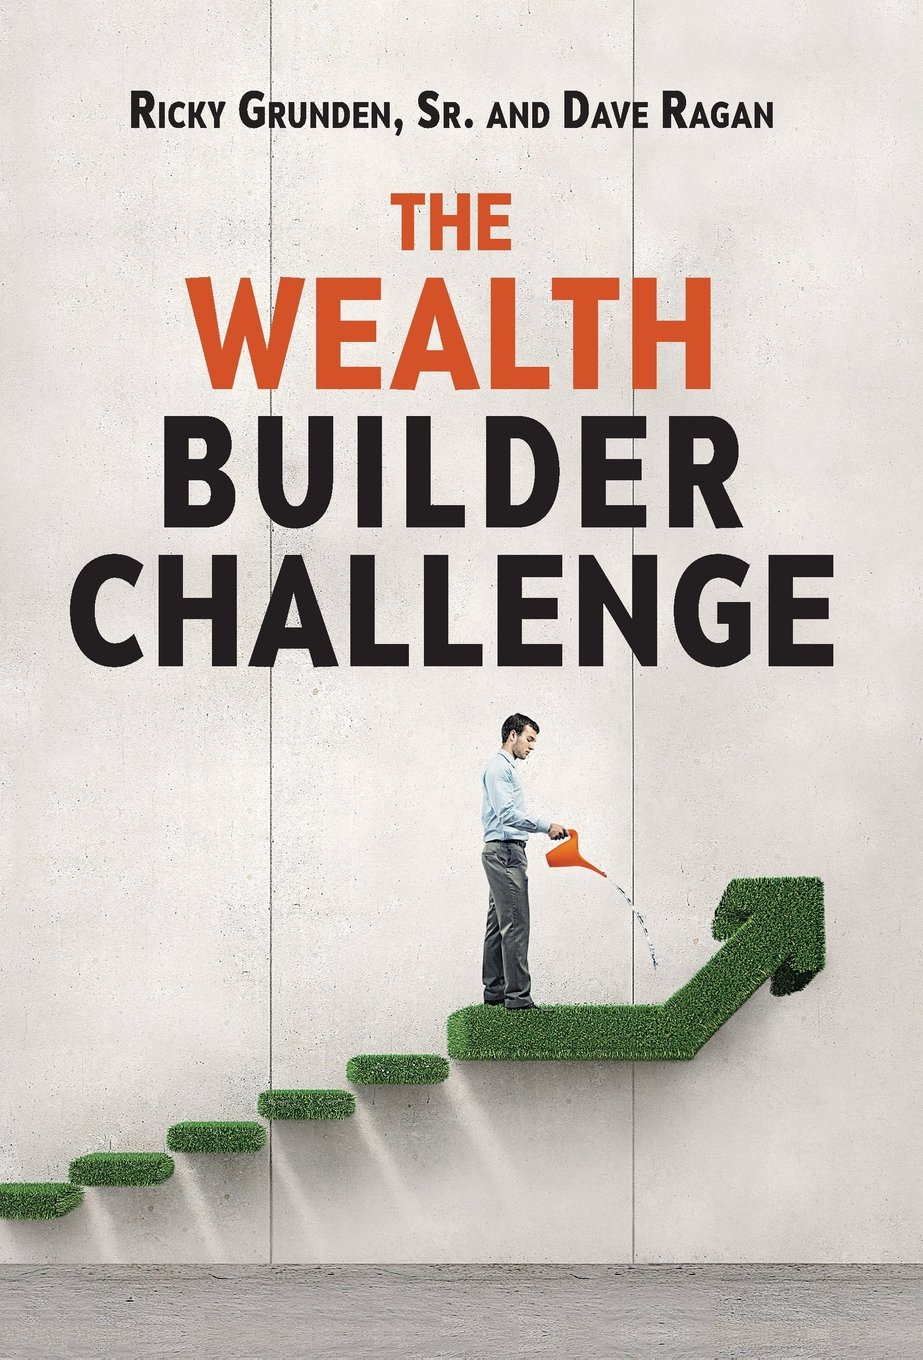 The Wealth Builder Challenge by Ricky Grunden Sr. and Dave Ragan